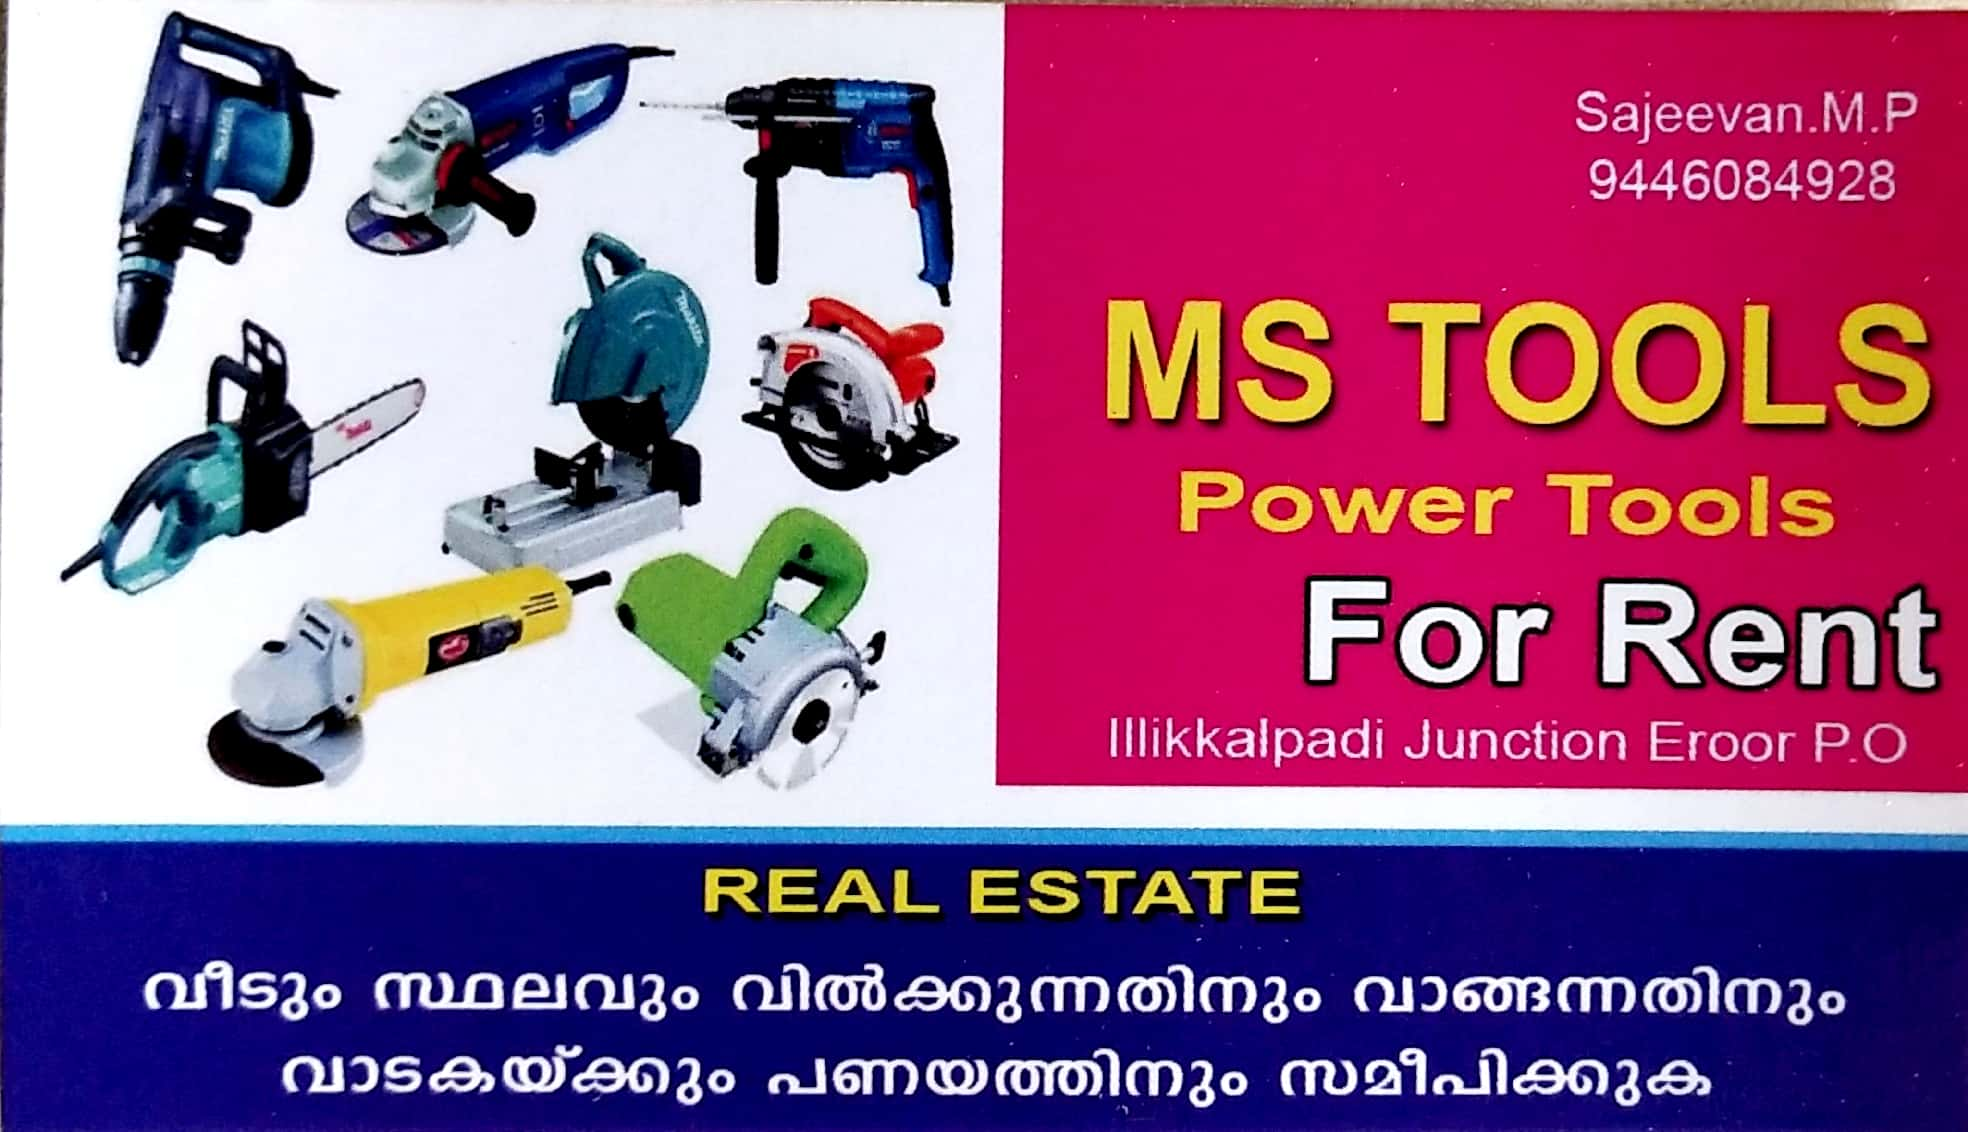 MS TOOLS, TOOLS,  service in Thrippunithura, Ernakulam